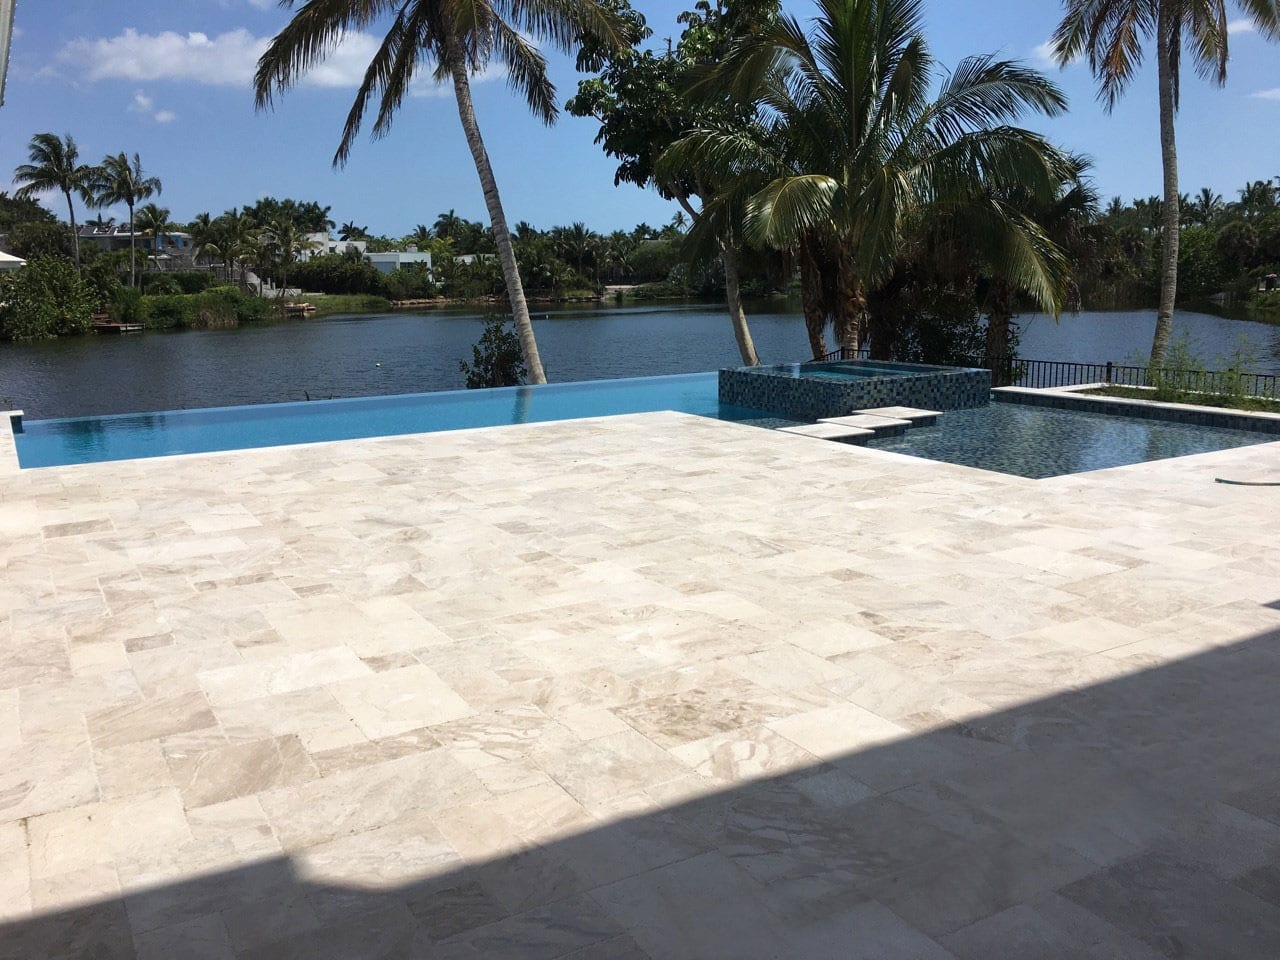 Stoneline-Group-Fantastic-Royal-Marble-Collection-Marble-Tumbled-paver-Patio-walkway-Pool-deck-backyards-design-Pictures